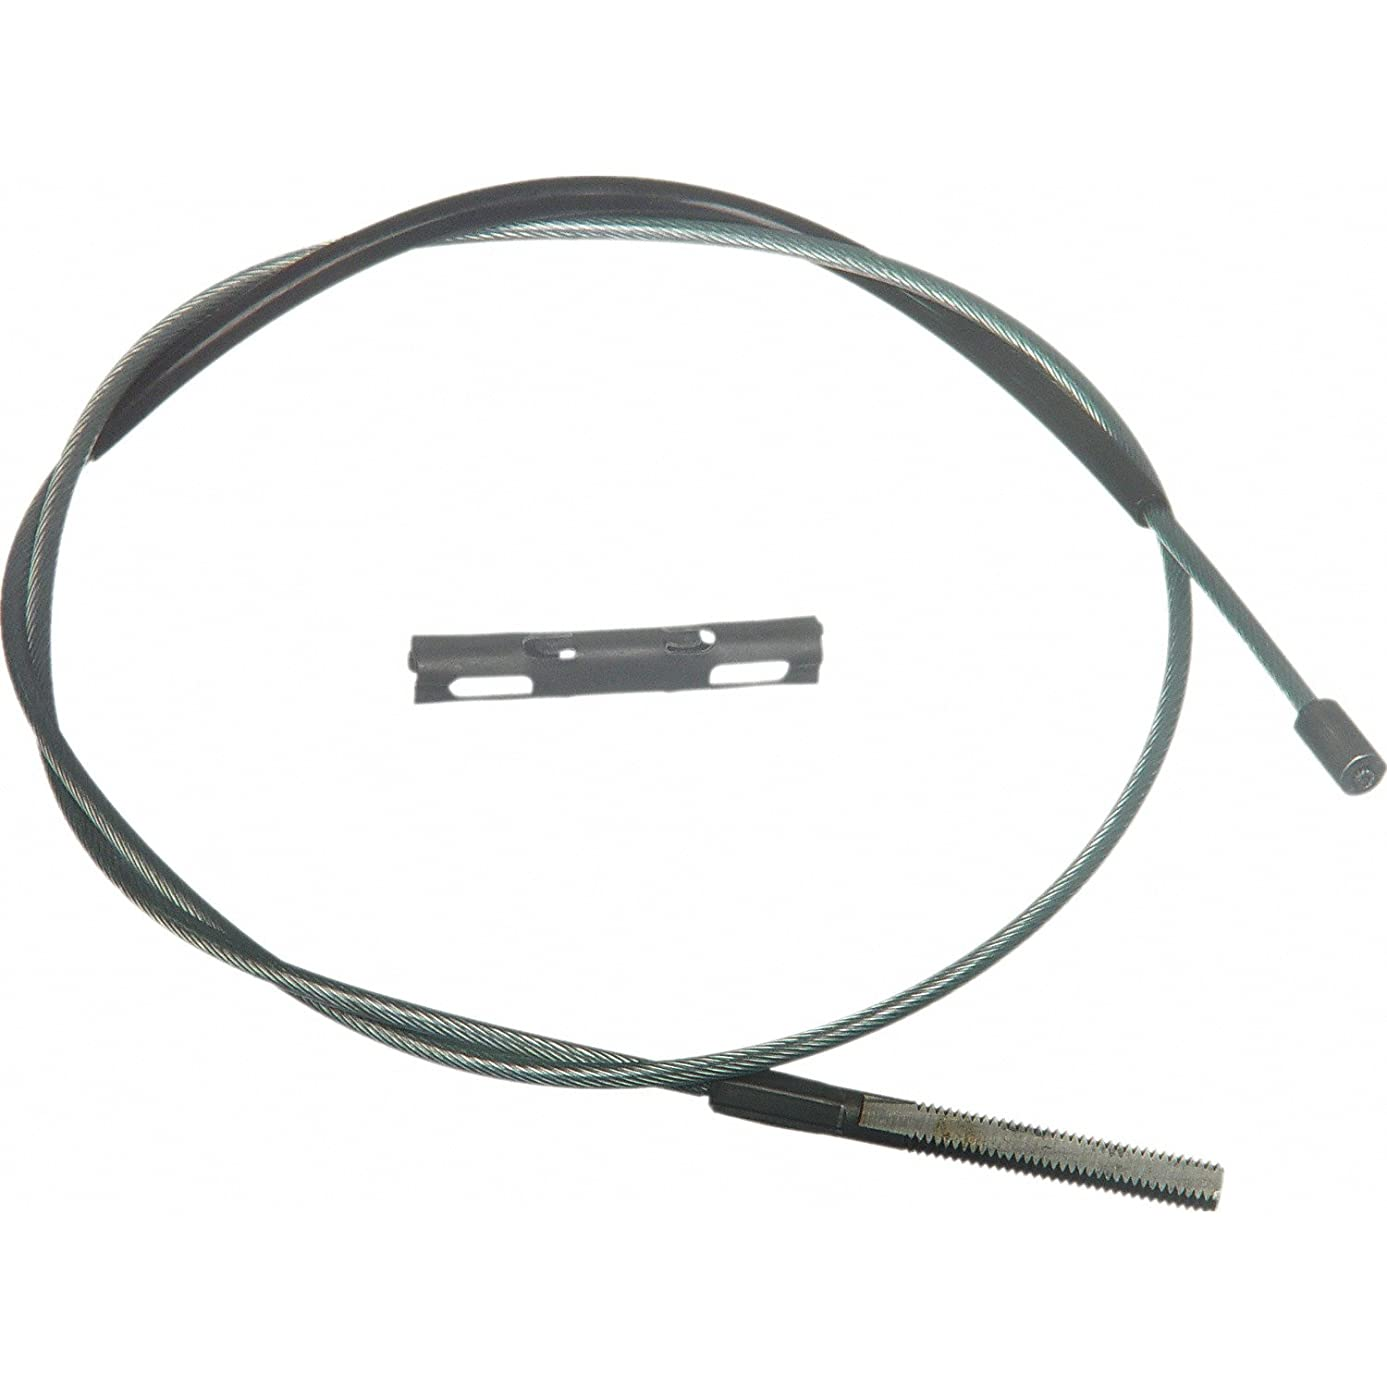 Wagner BC140234 Premium Parking Brake Cable, Intermediate